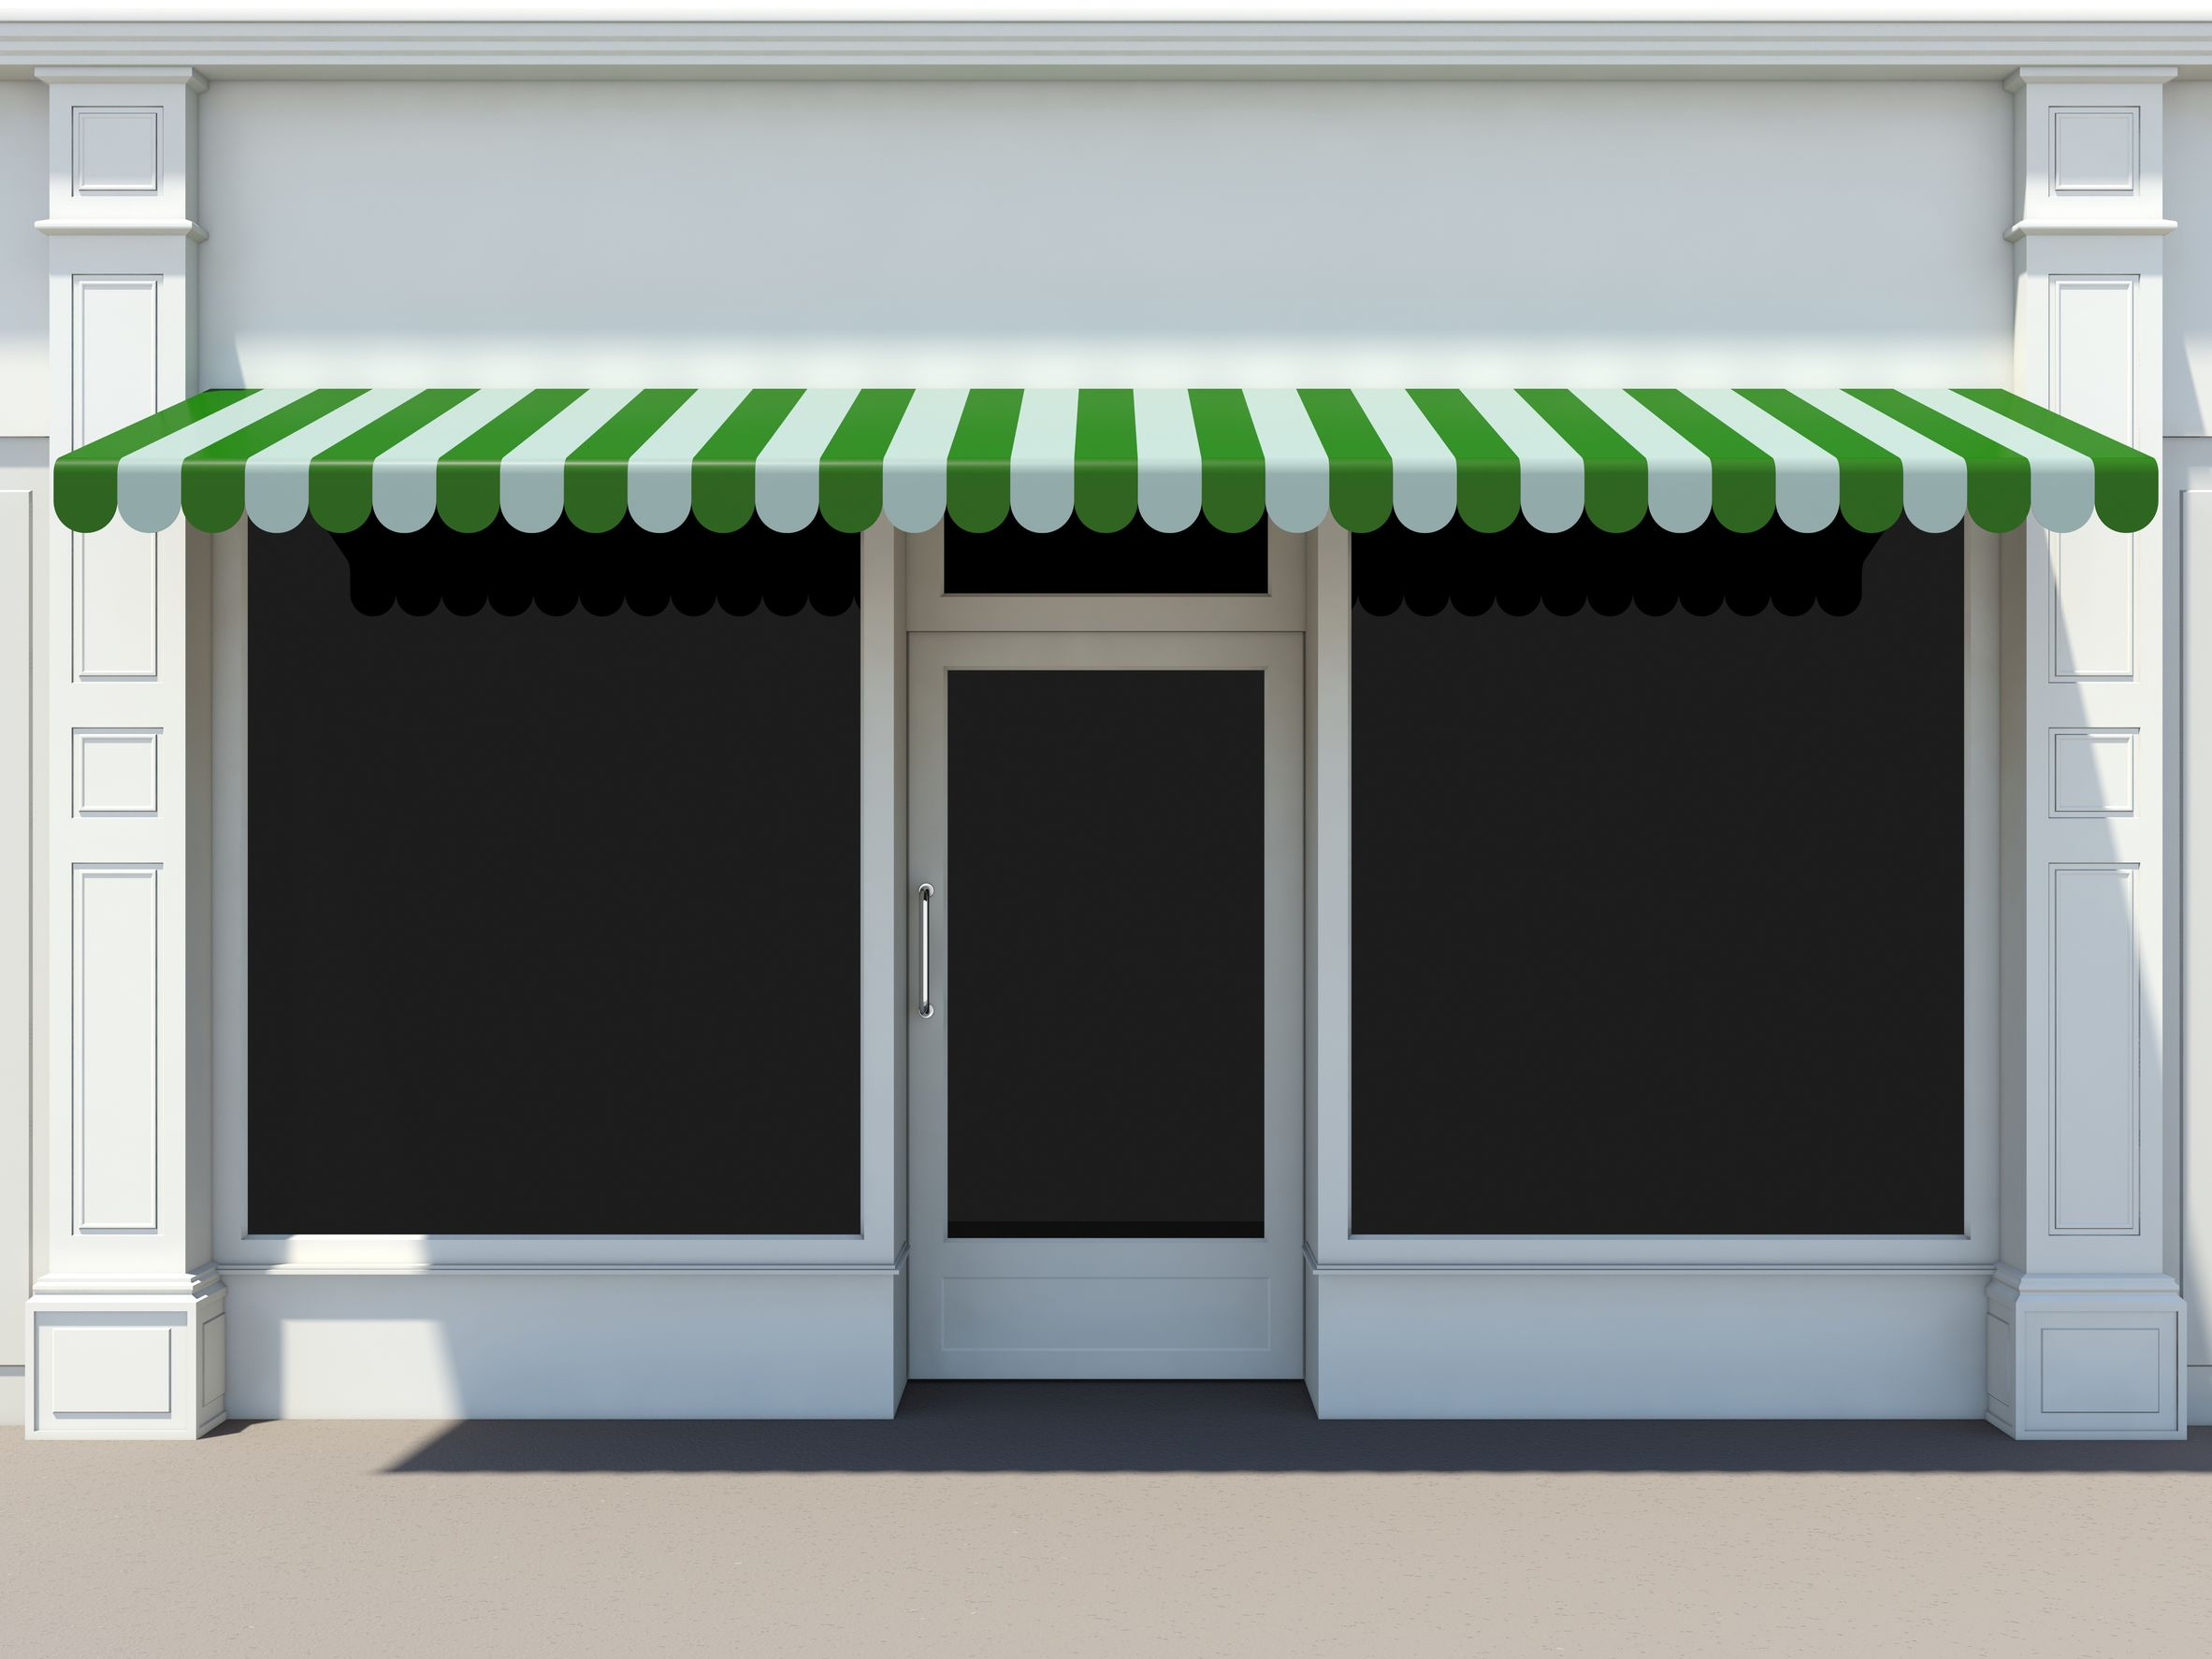 19523714 - shopfront in the sun - classic store front with green awnings